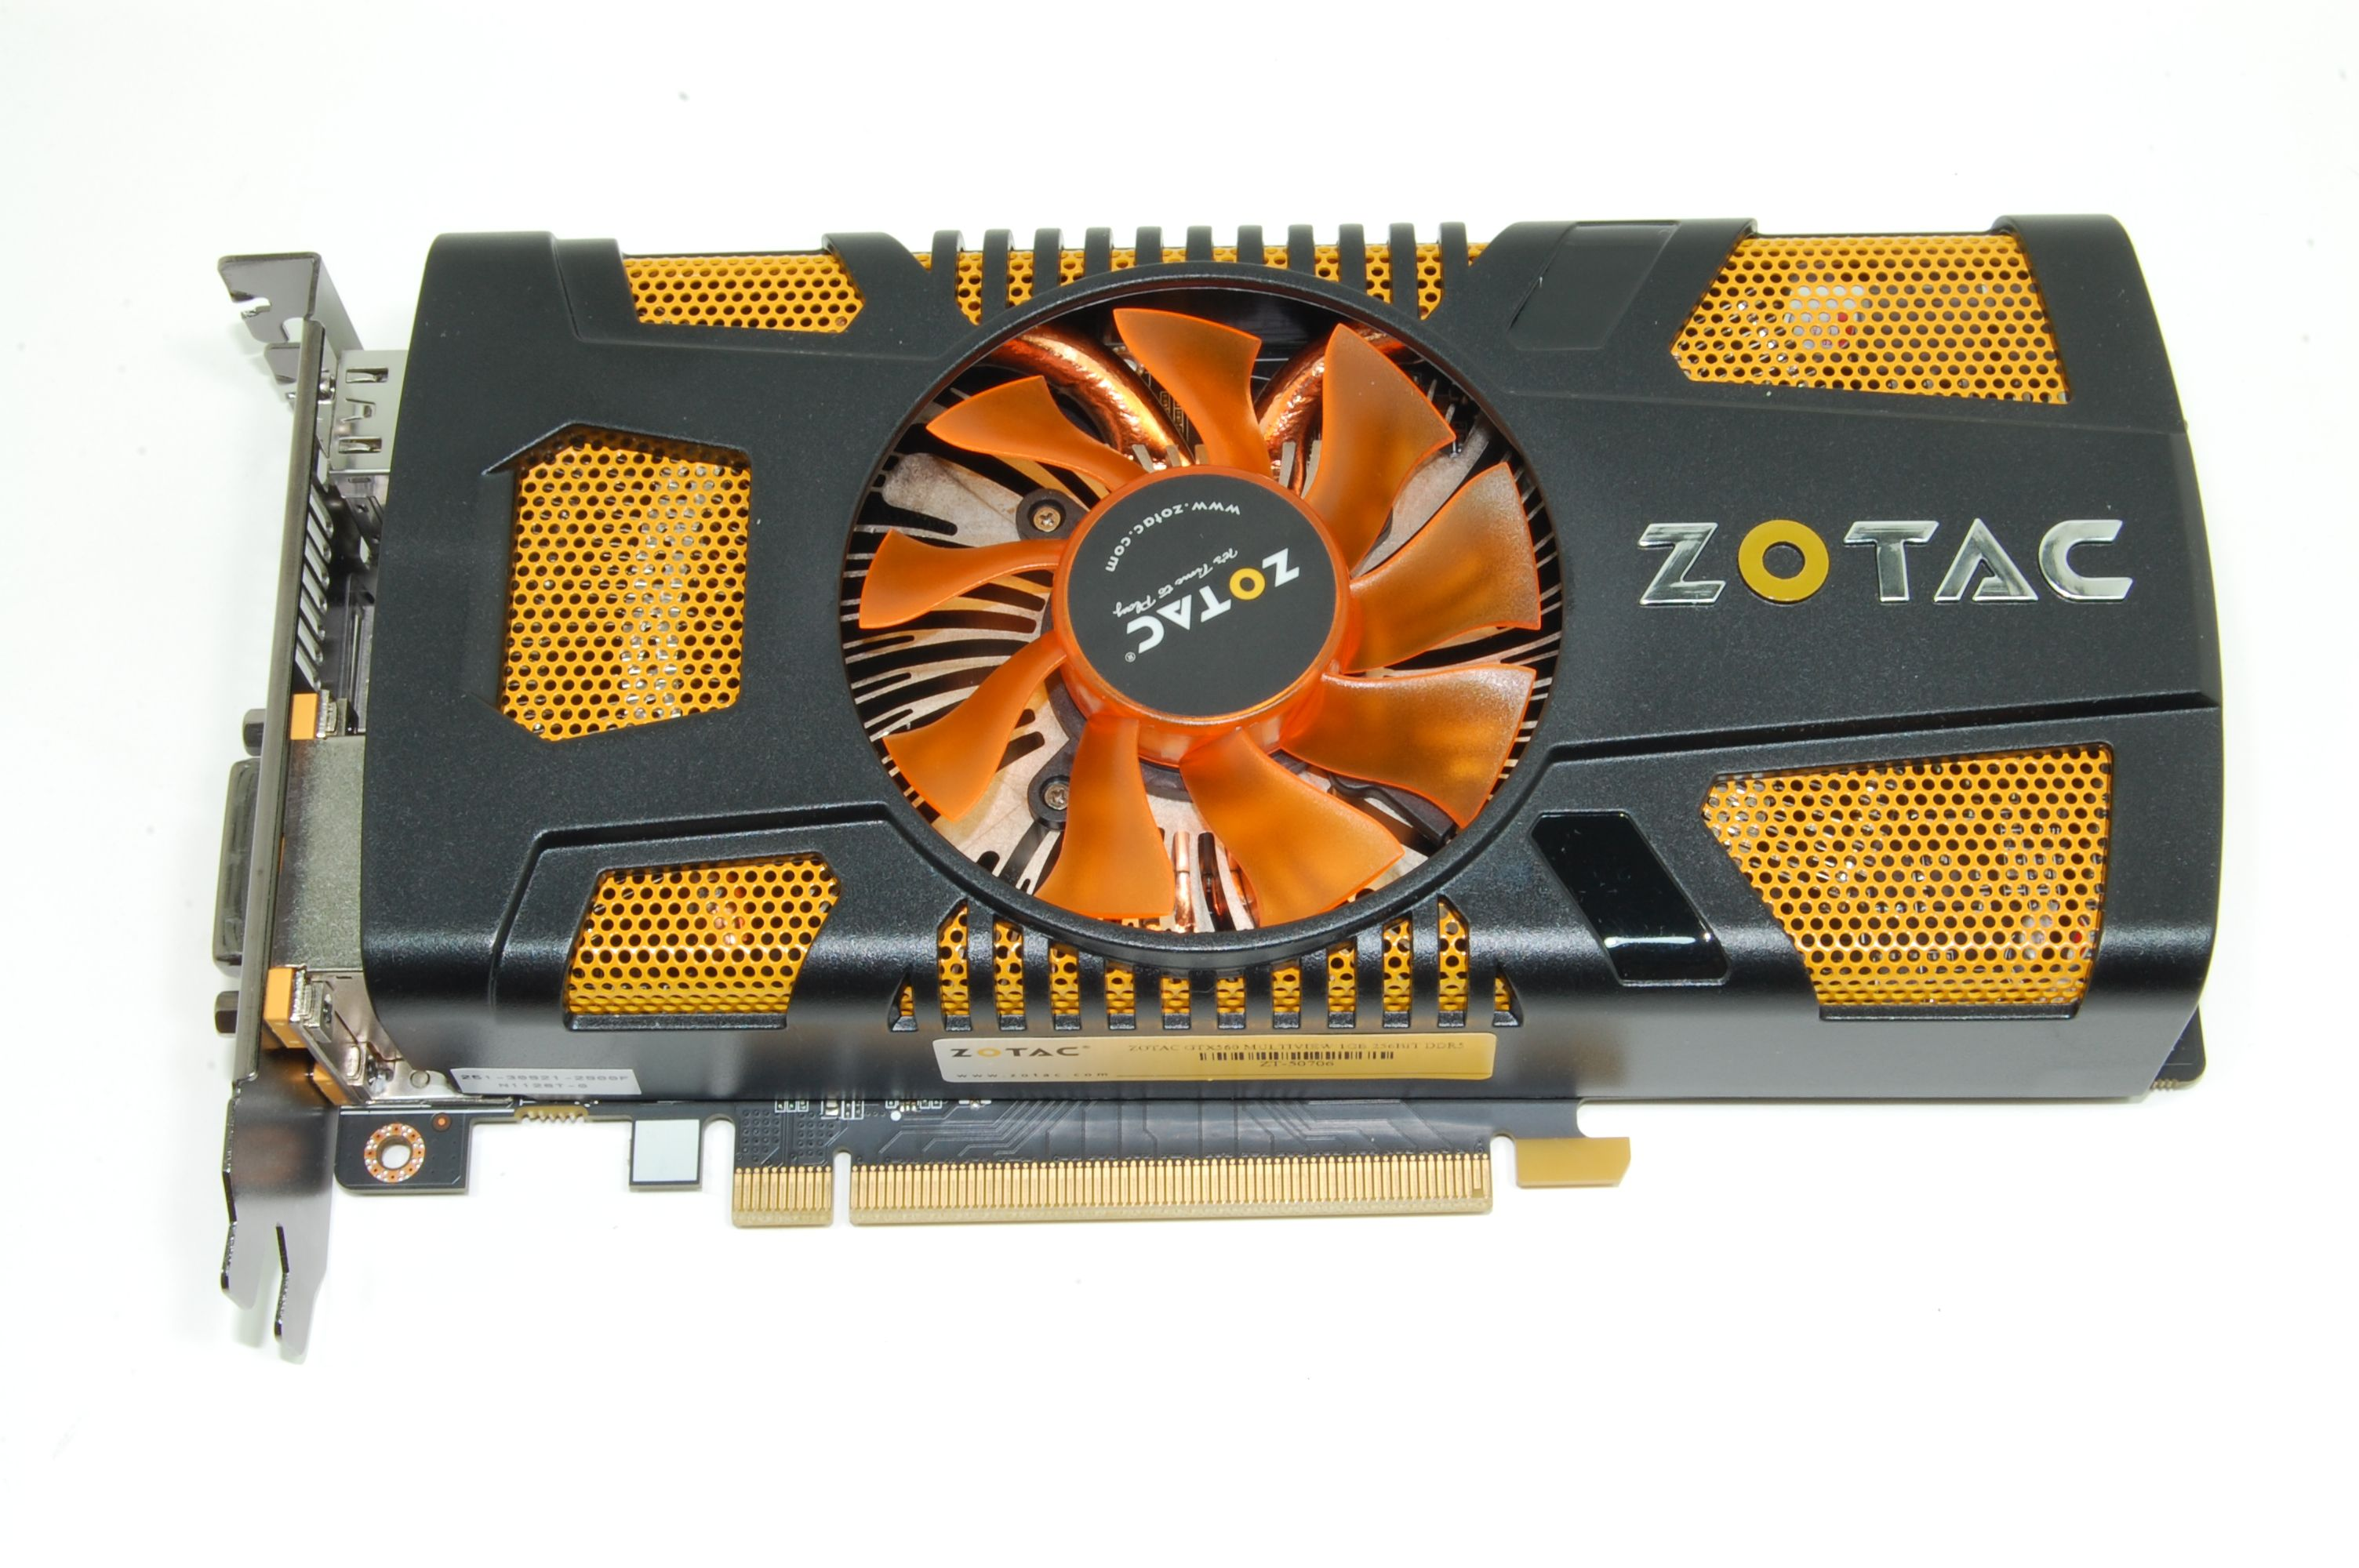 Zotac GTX 560 Multiview